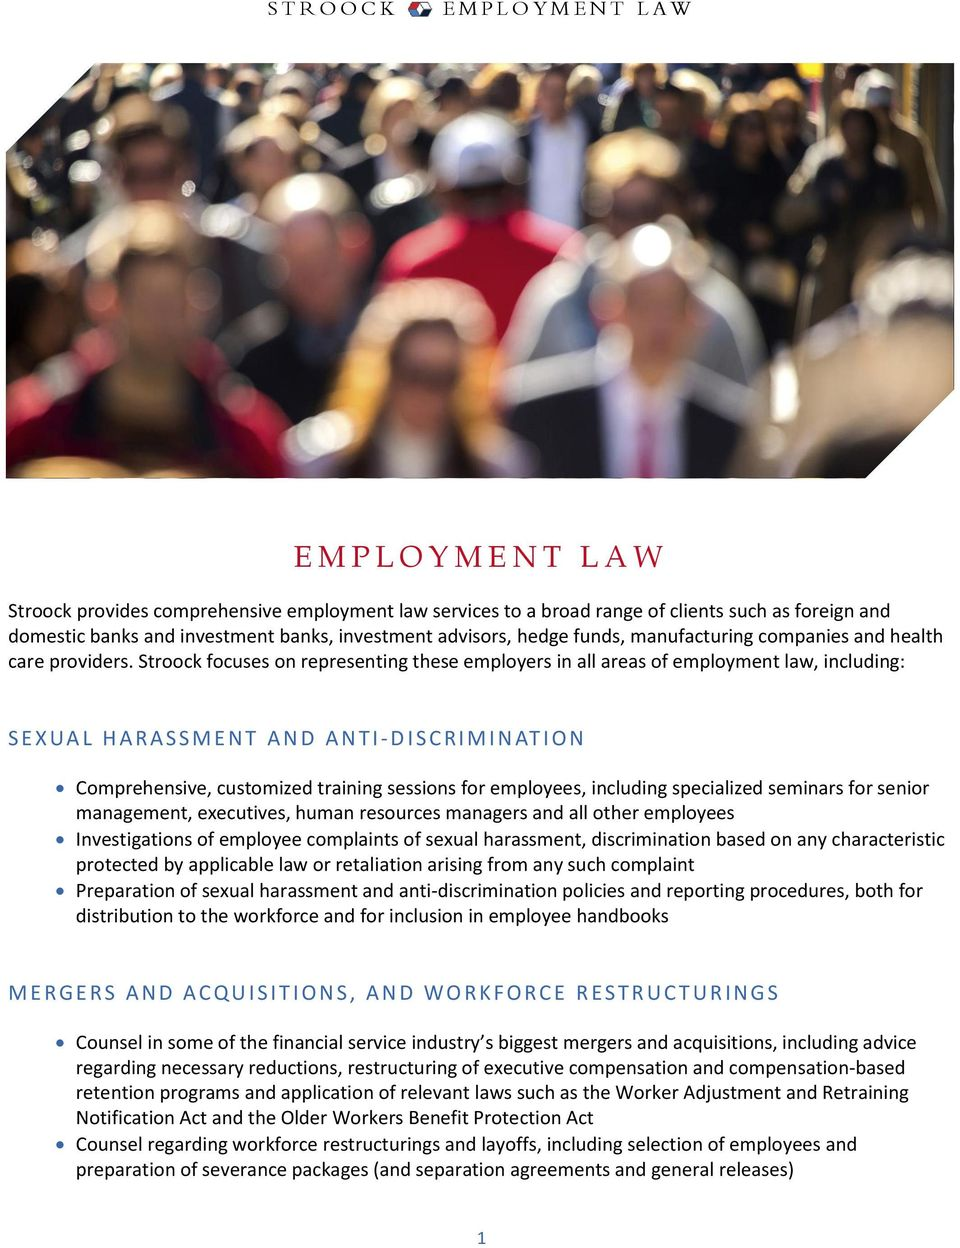 Stroock focuses on representing these employers in all areas of employment law, including: S E X UA L H A R A S S M E N T A N D A N T I - D I S C R I M I N AT I O N Comprehensive, customized training